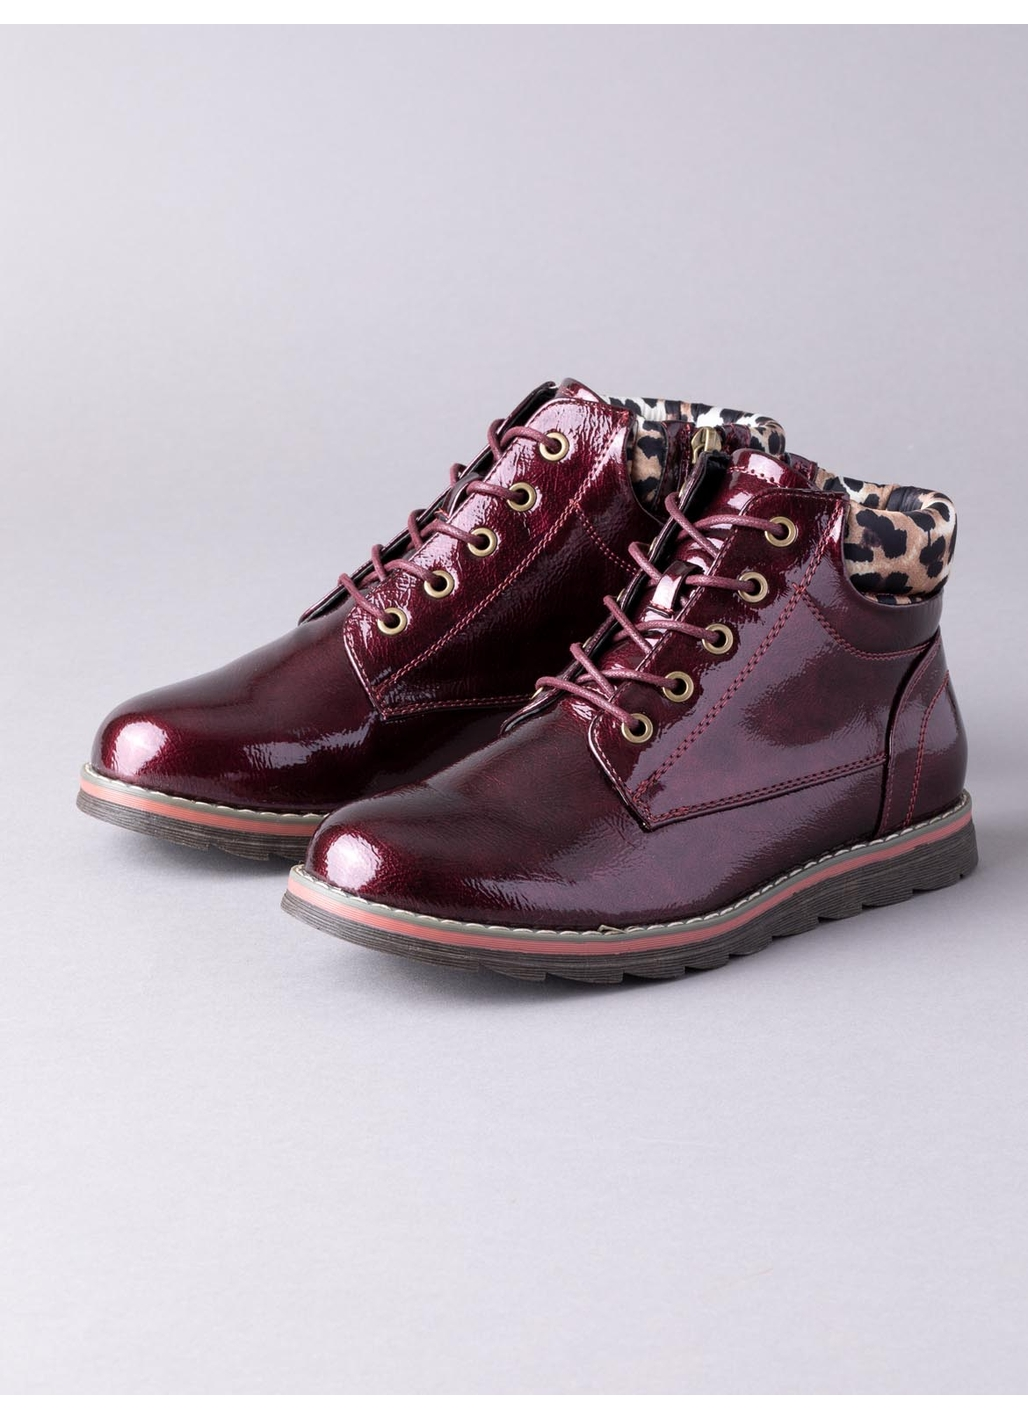 Lotus Naomi Ankle Boots in Burgundy